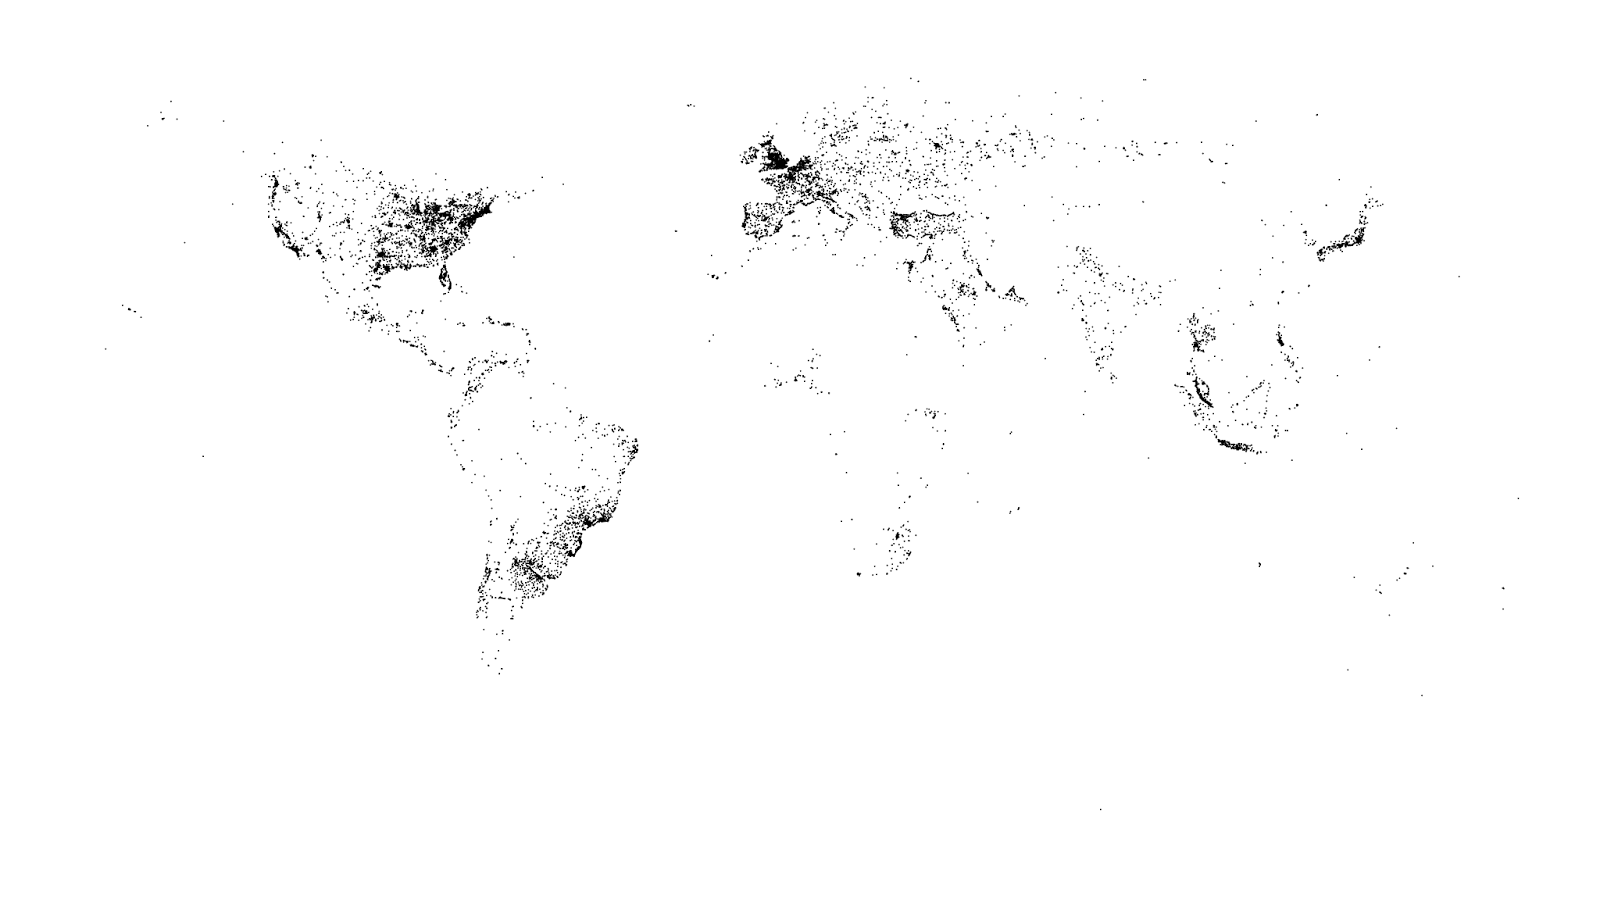 Mapping the world with tweets